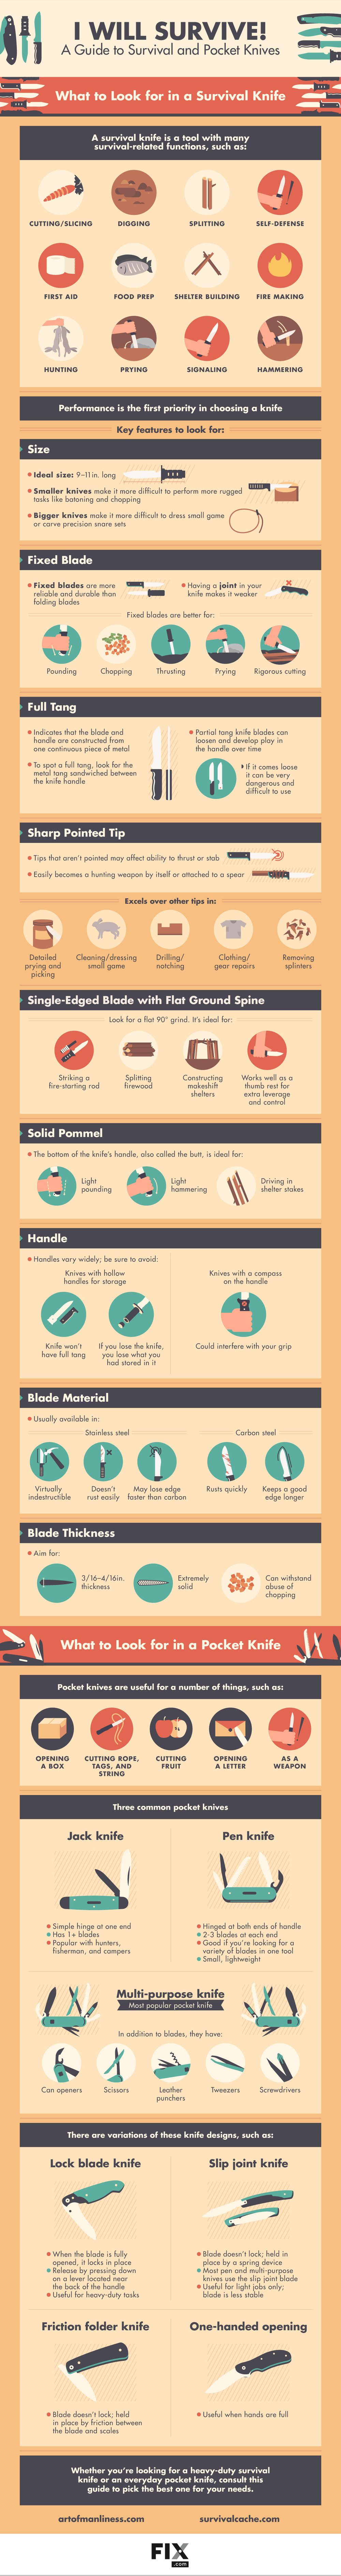 I Will Survive! A Guide to Survival and Pocket Knives infographics